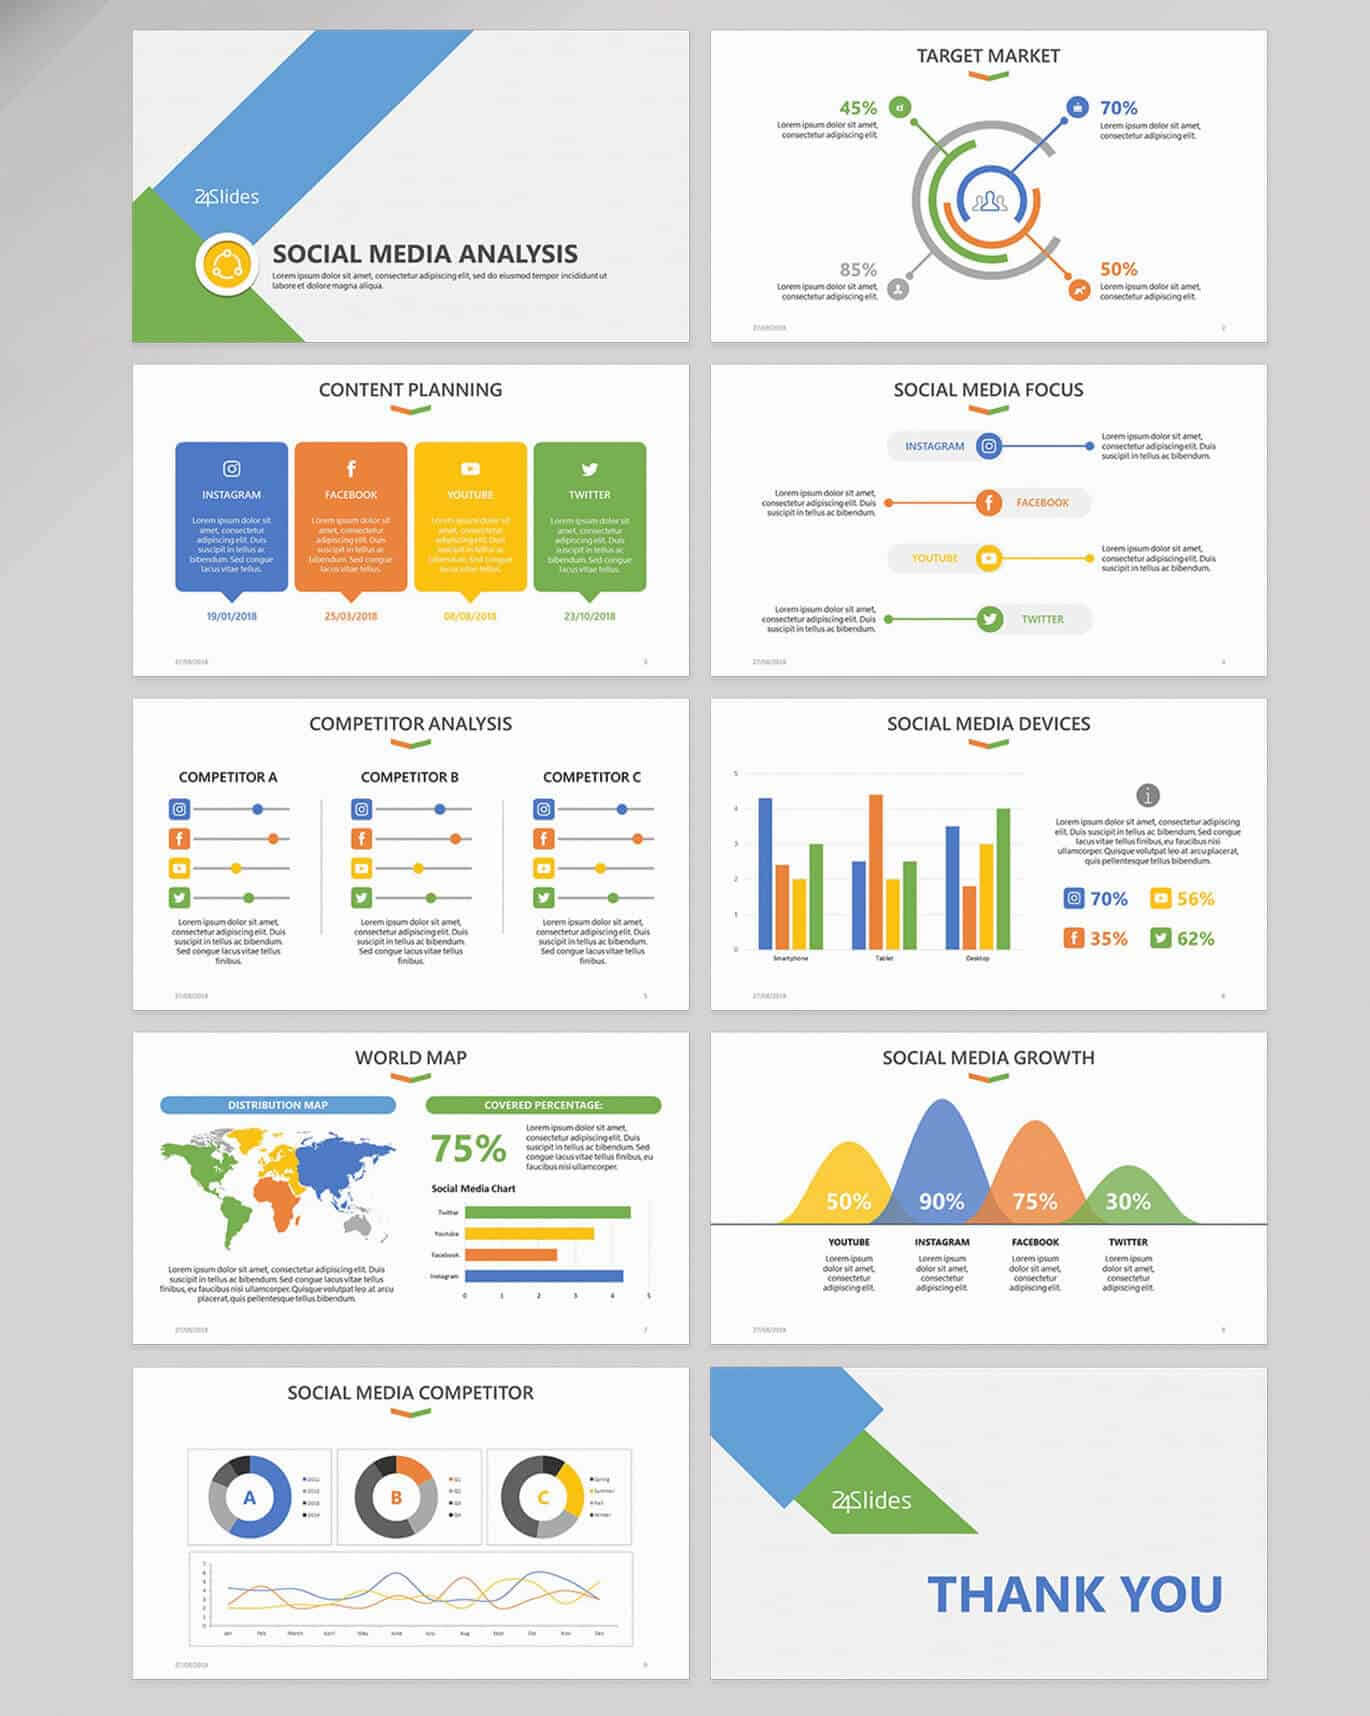 15 Fun And Colorful Free Powerpoint Templates   Present Better in Fun Powerpoint Templates Free Download